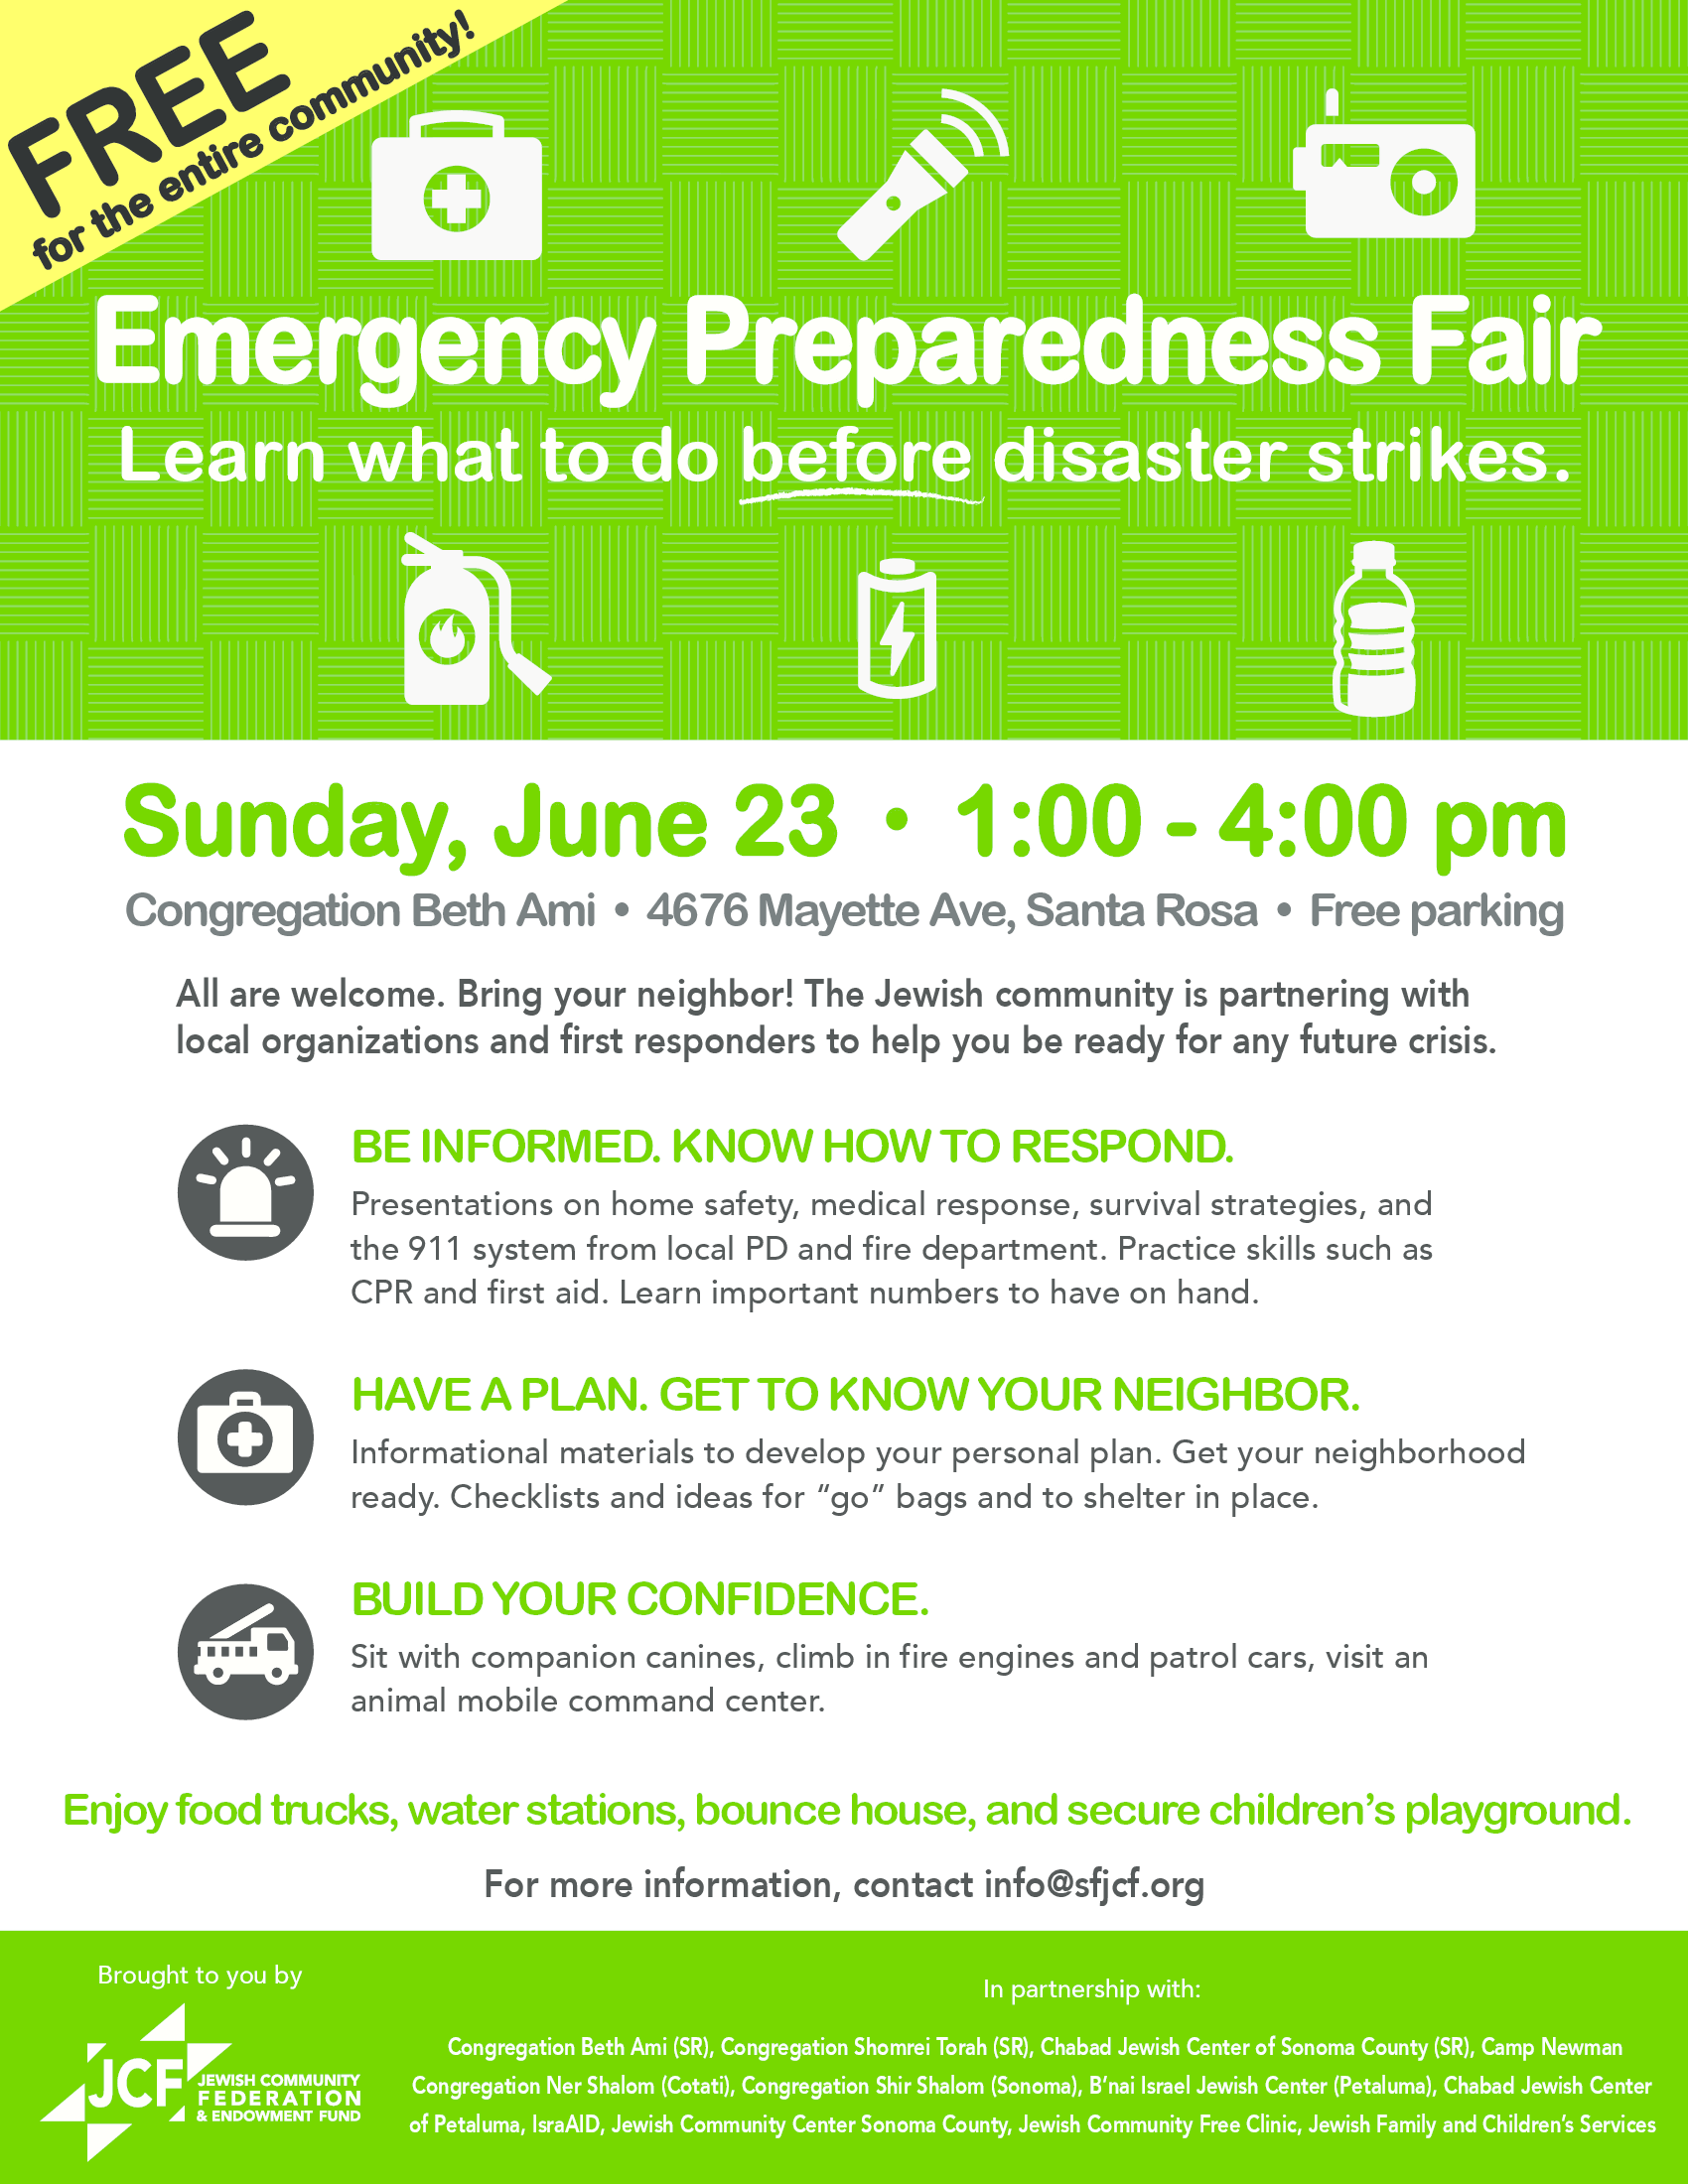 Emergency-Preparedness-flyer-v8-_1_FINAL.-8x11(1).png